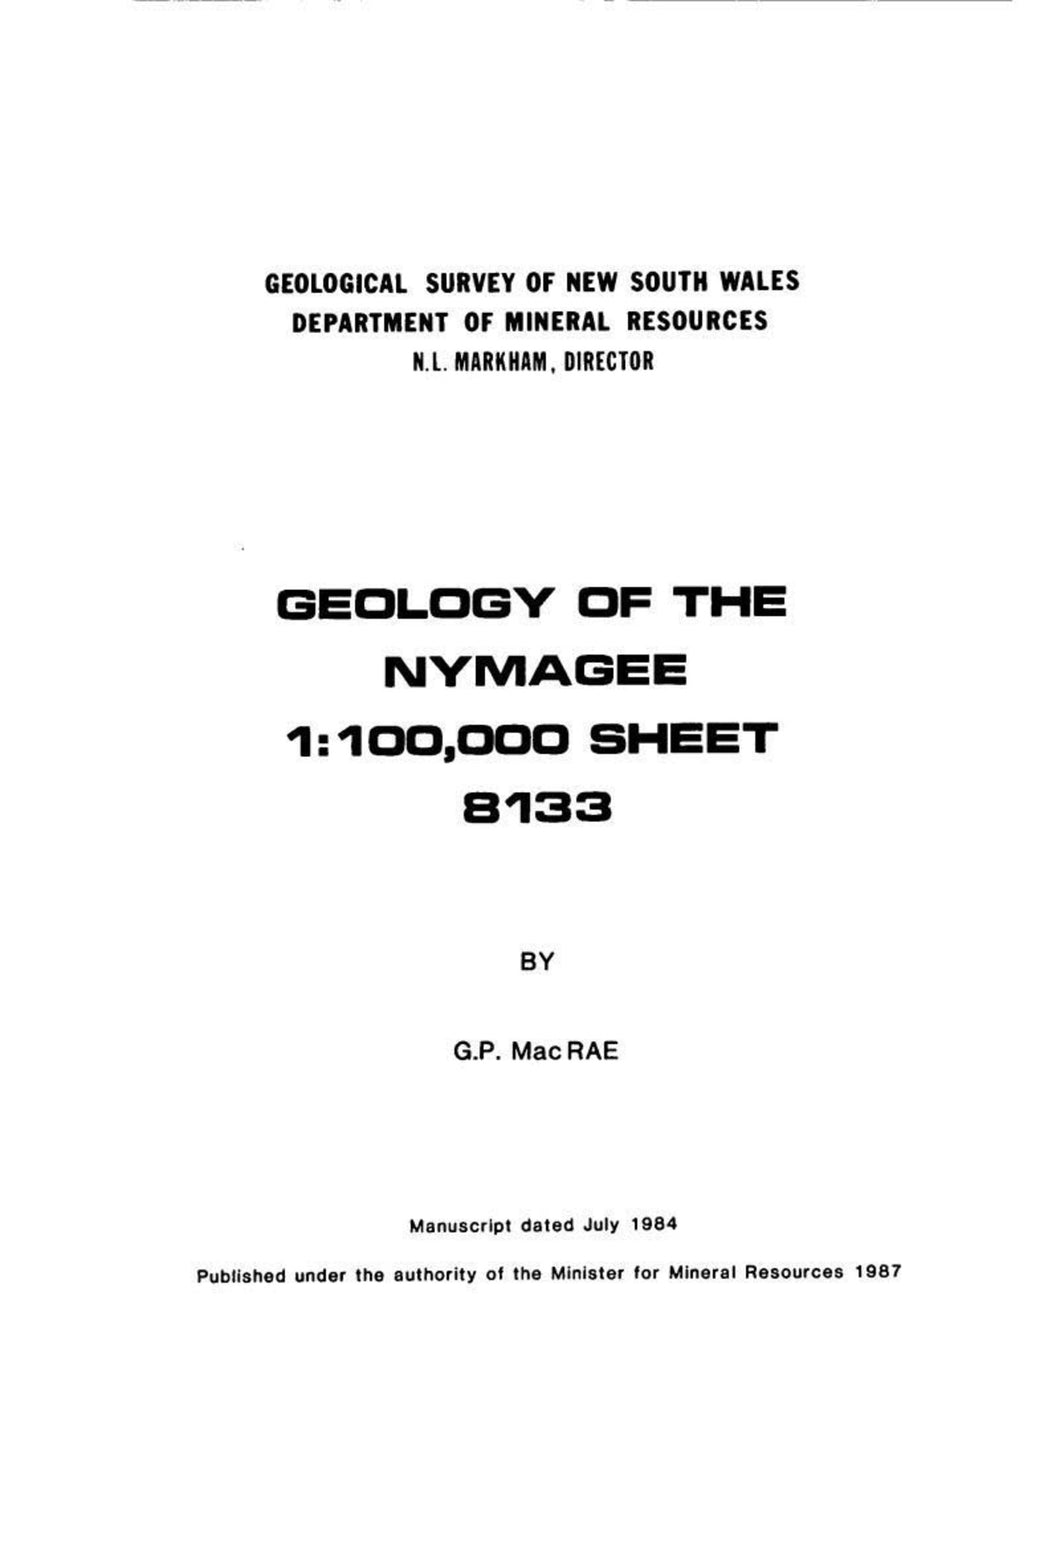 Image of Nymagee Explanatory Notes 1987 book cover